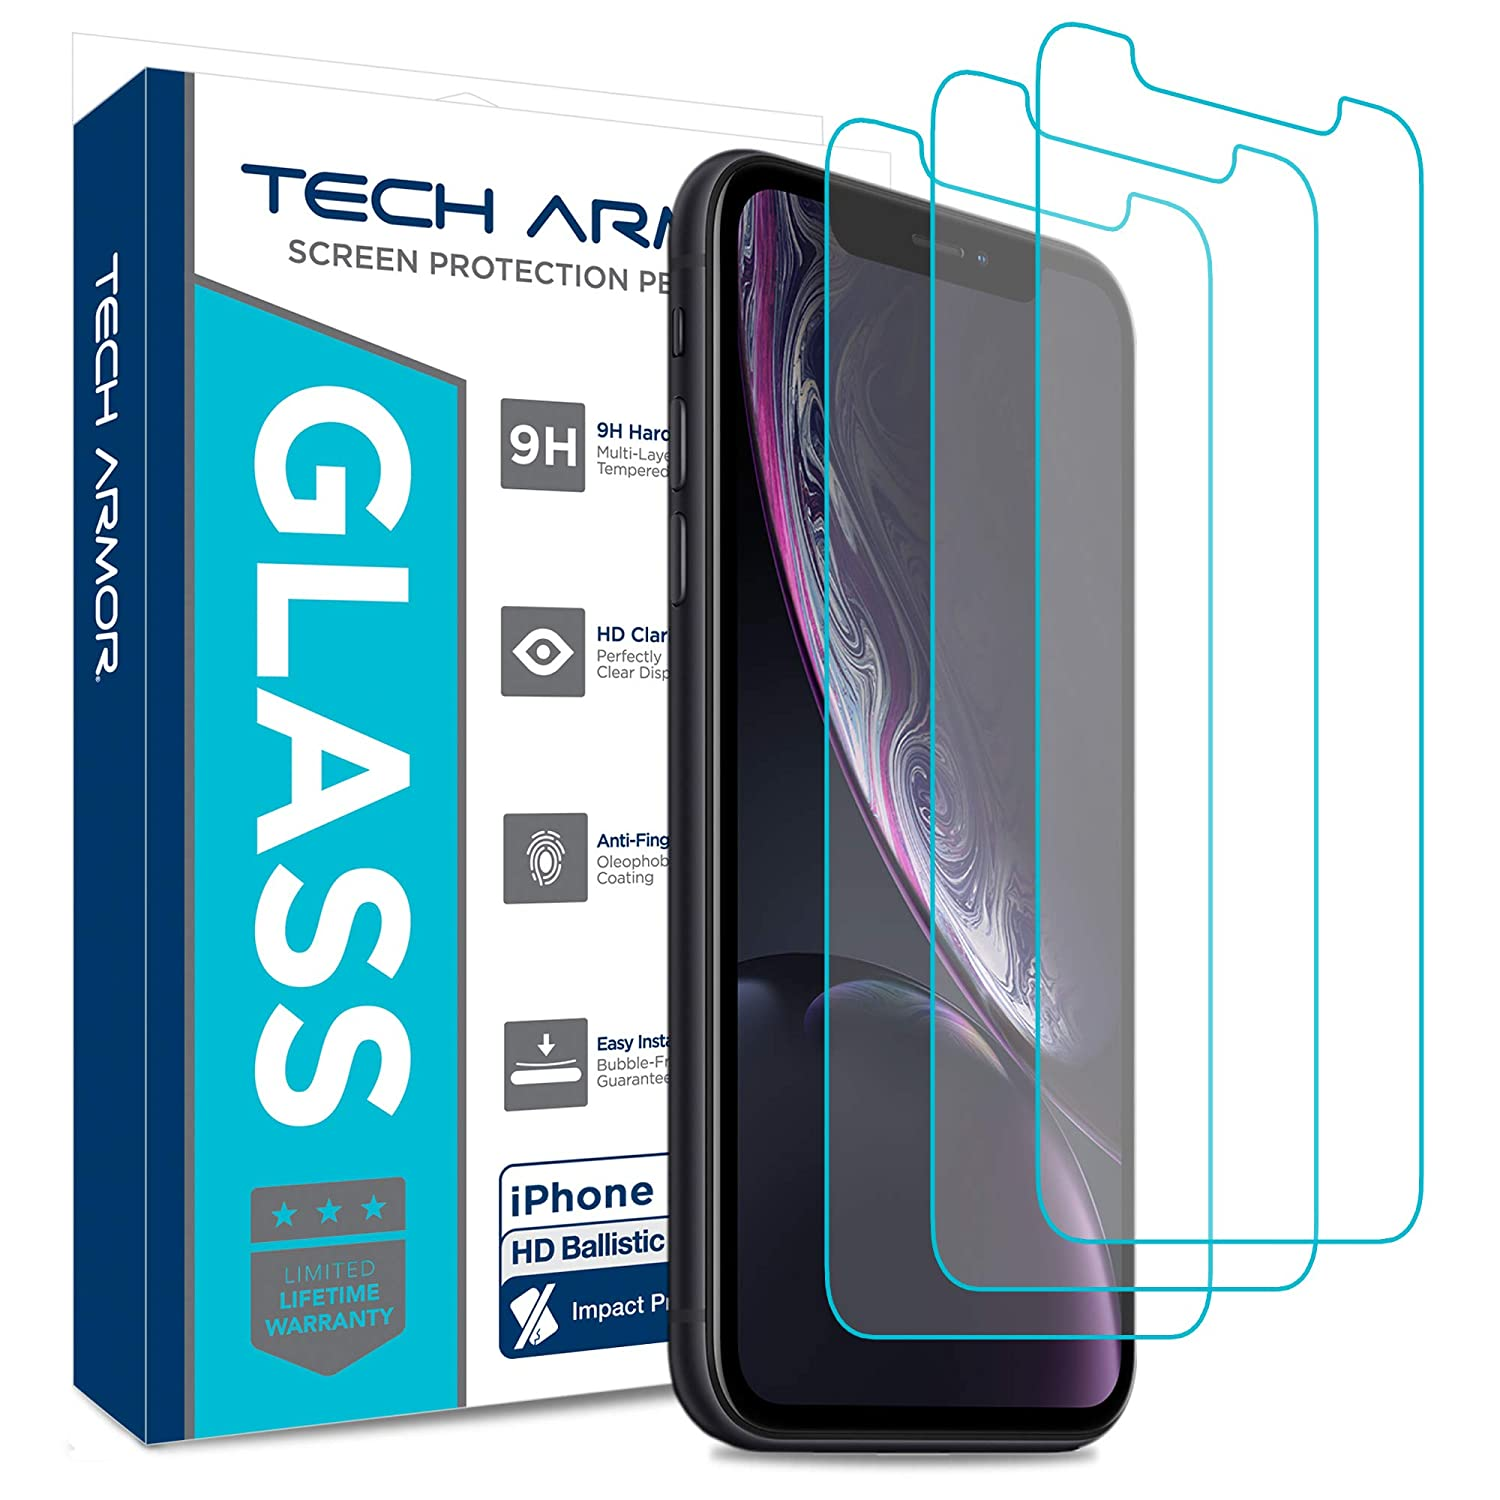 Tech Armor Apple iPhone Xr Ballistic Glass Screen Protector [3-Pack] Case-Friendly Tempered Glass, Haptic Touch Accurate Designed 2018 Apple iPhone Xr